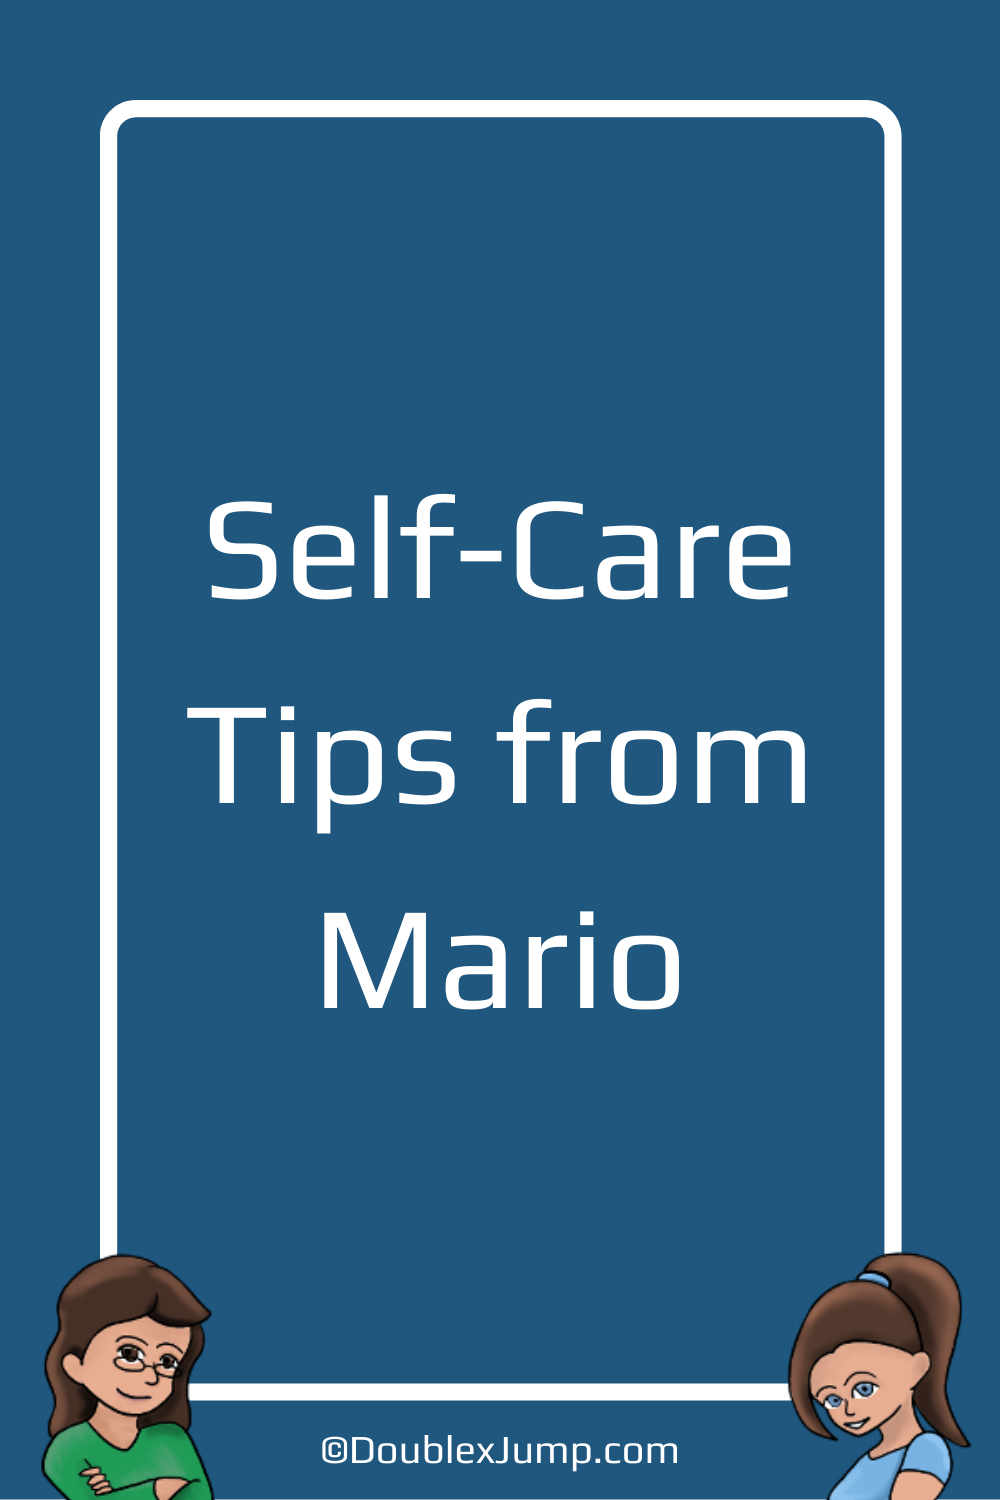 Self-Care Tips from Mario   Video Games   Self-Care Tips   Gaming   Nintendo   DoublexJump.com